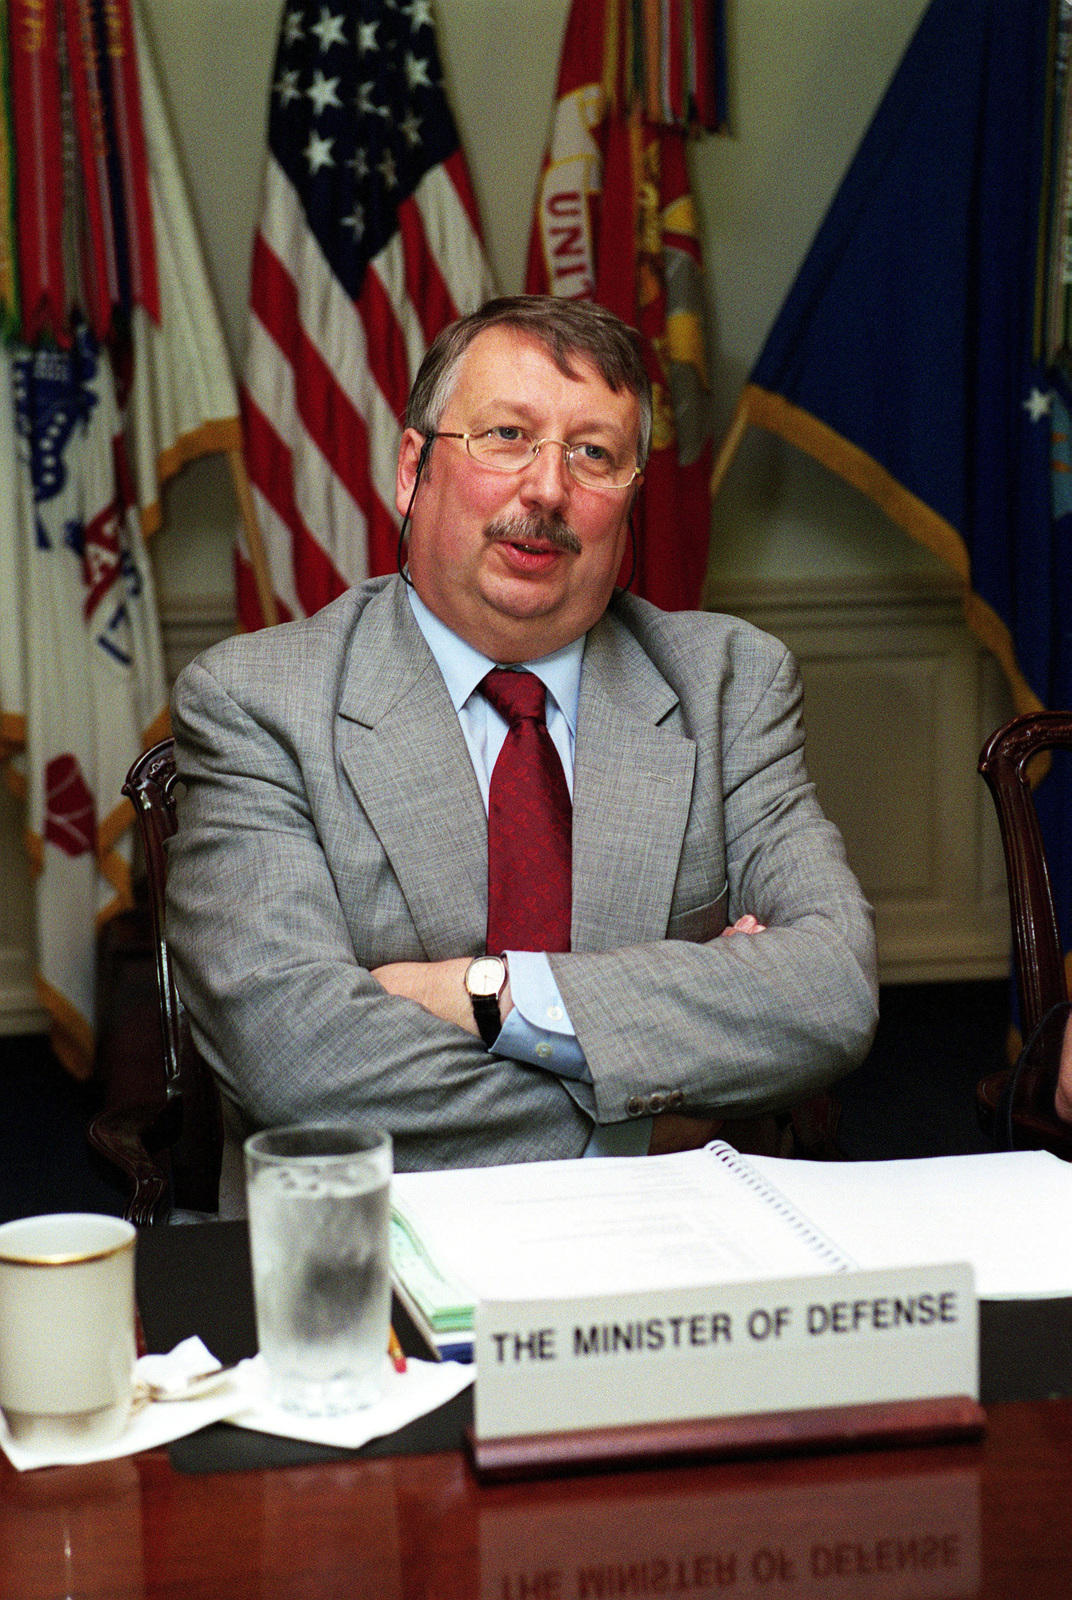 Andre Flahaut, Belgium Minister of Defense, attends a meeting at the Pentagon, Washington, D.C., on Jun. 18, 2001.(DoD PHOTO by Helene C. Stikkel) (Released)